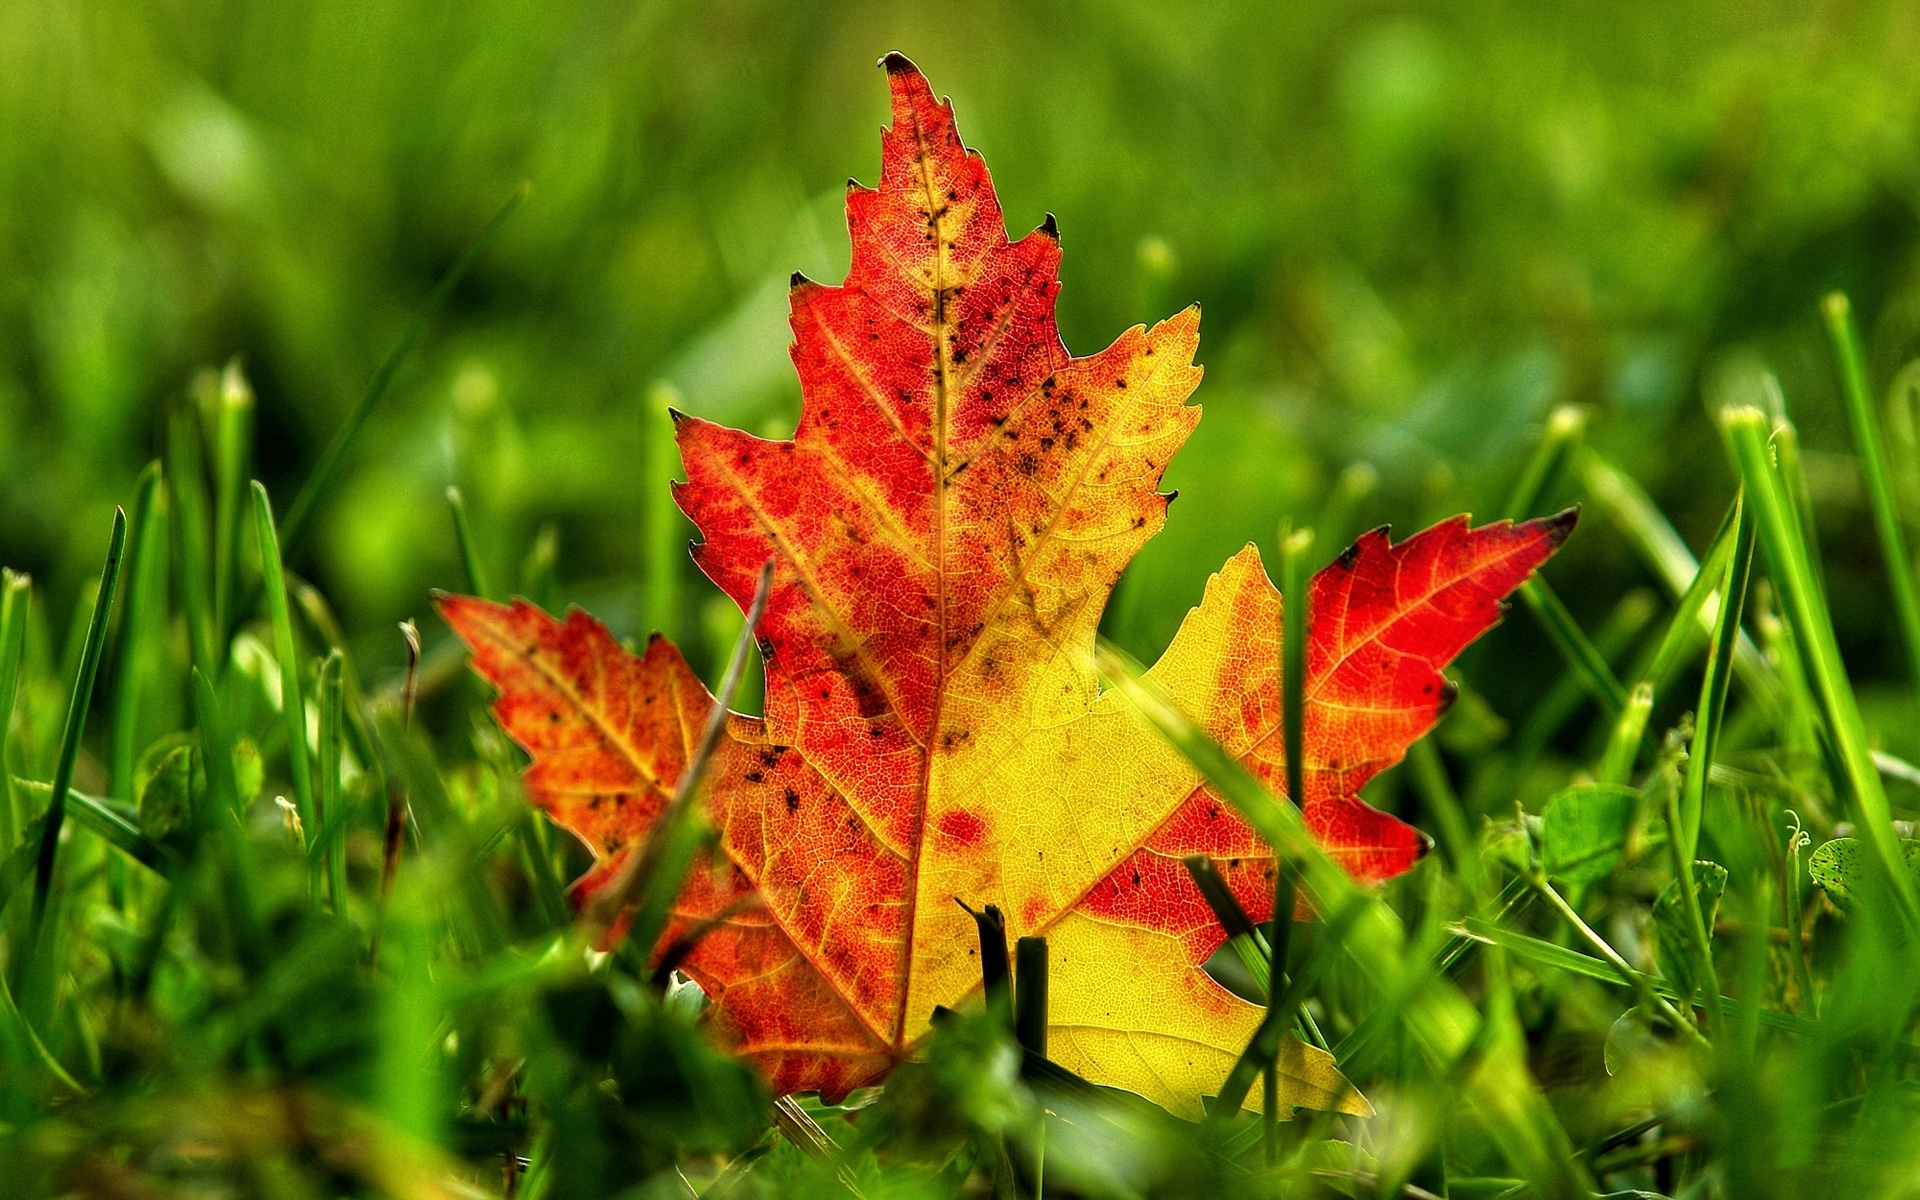 29890 download wallpaper Plants, Autumn, Leaves screensavers and pictures for free